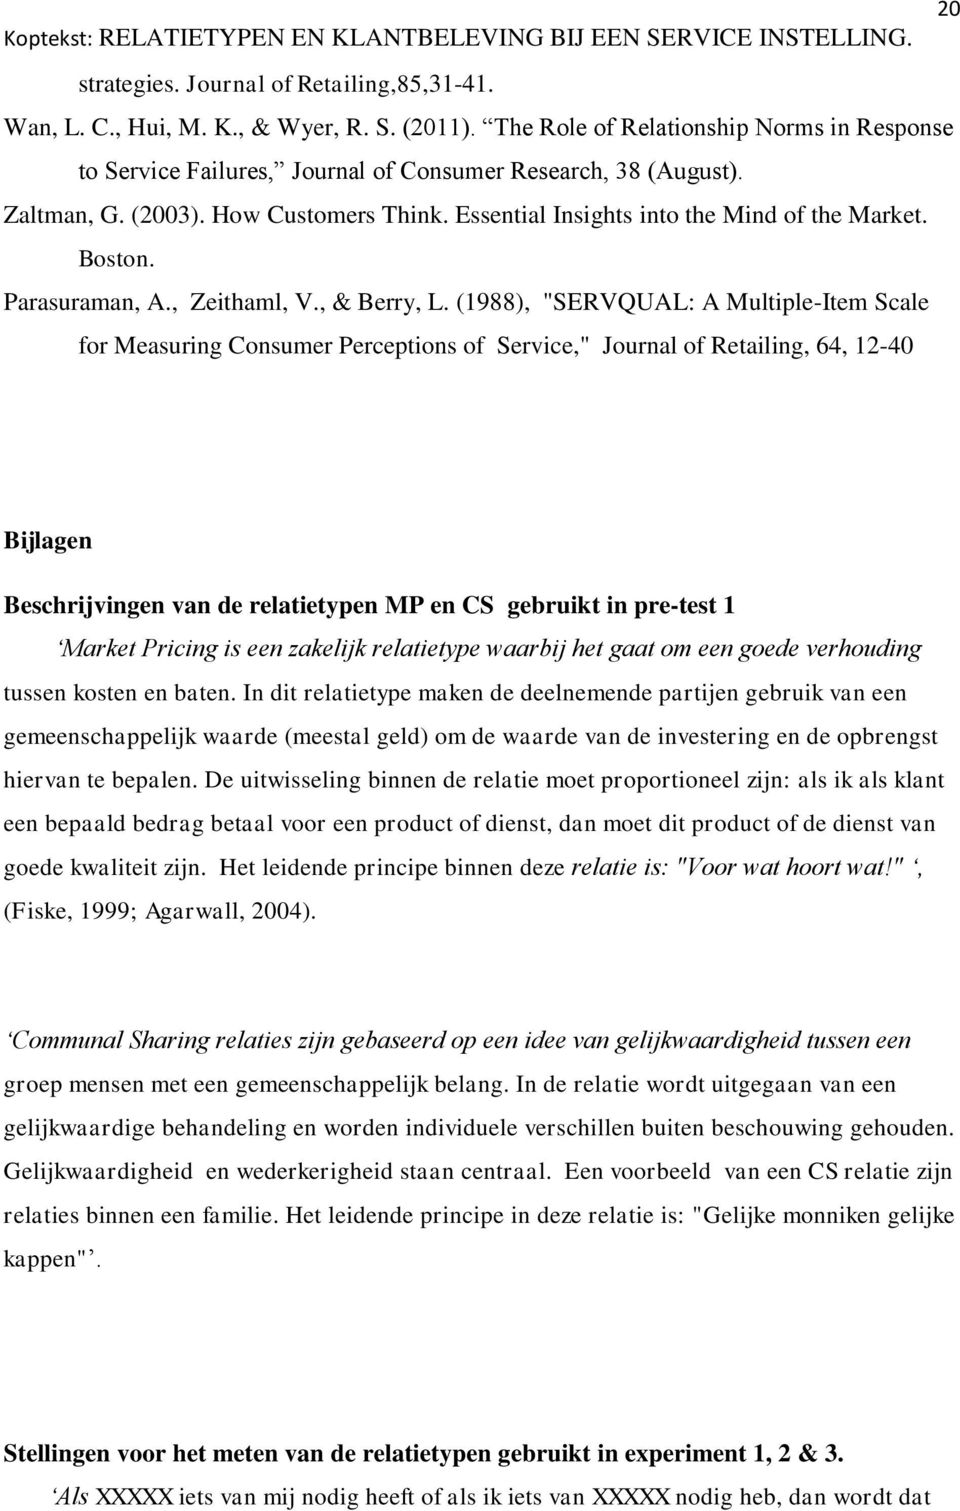 "(1988), ""SERVQUAL: A Multiple-Item Scale for Measuring Consumer Perceptions of Service,"" Journal of Retailing, 64, 12-40 Bijlagen Beschrijvingen van de relatietypen MP en CS gebruikt in pre-test 1"